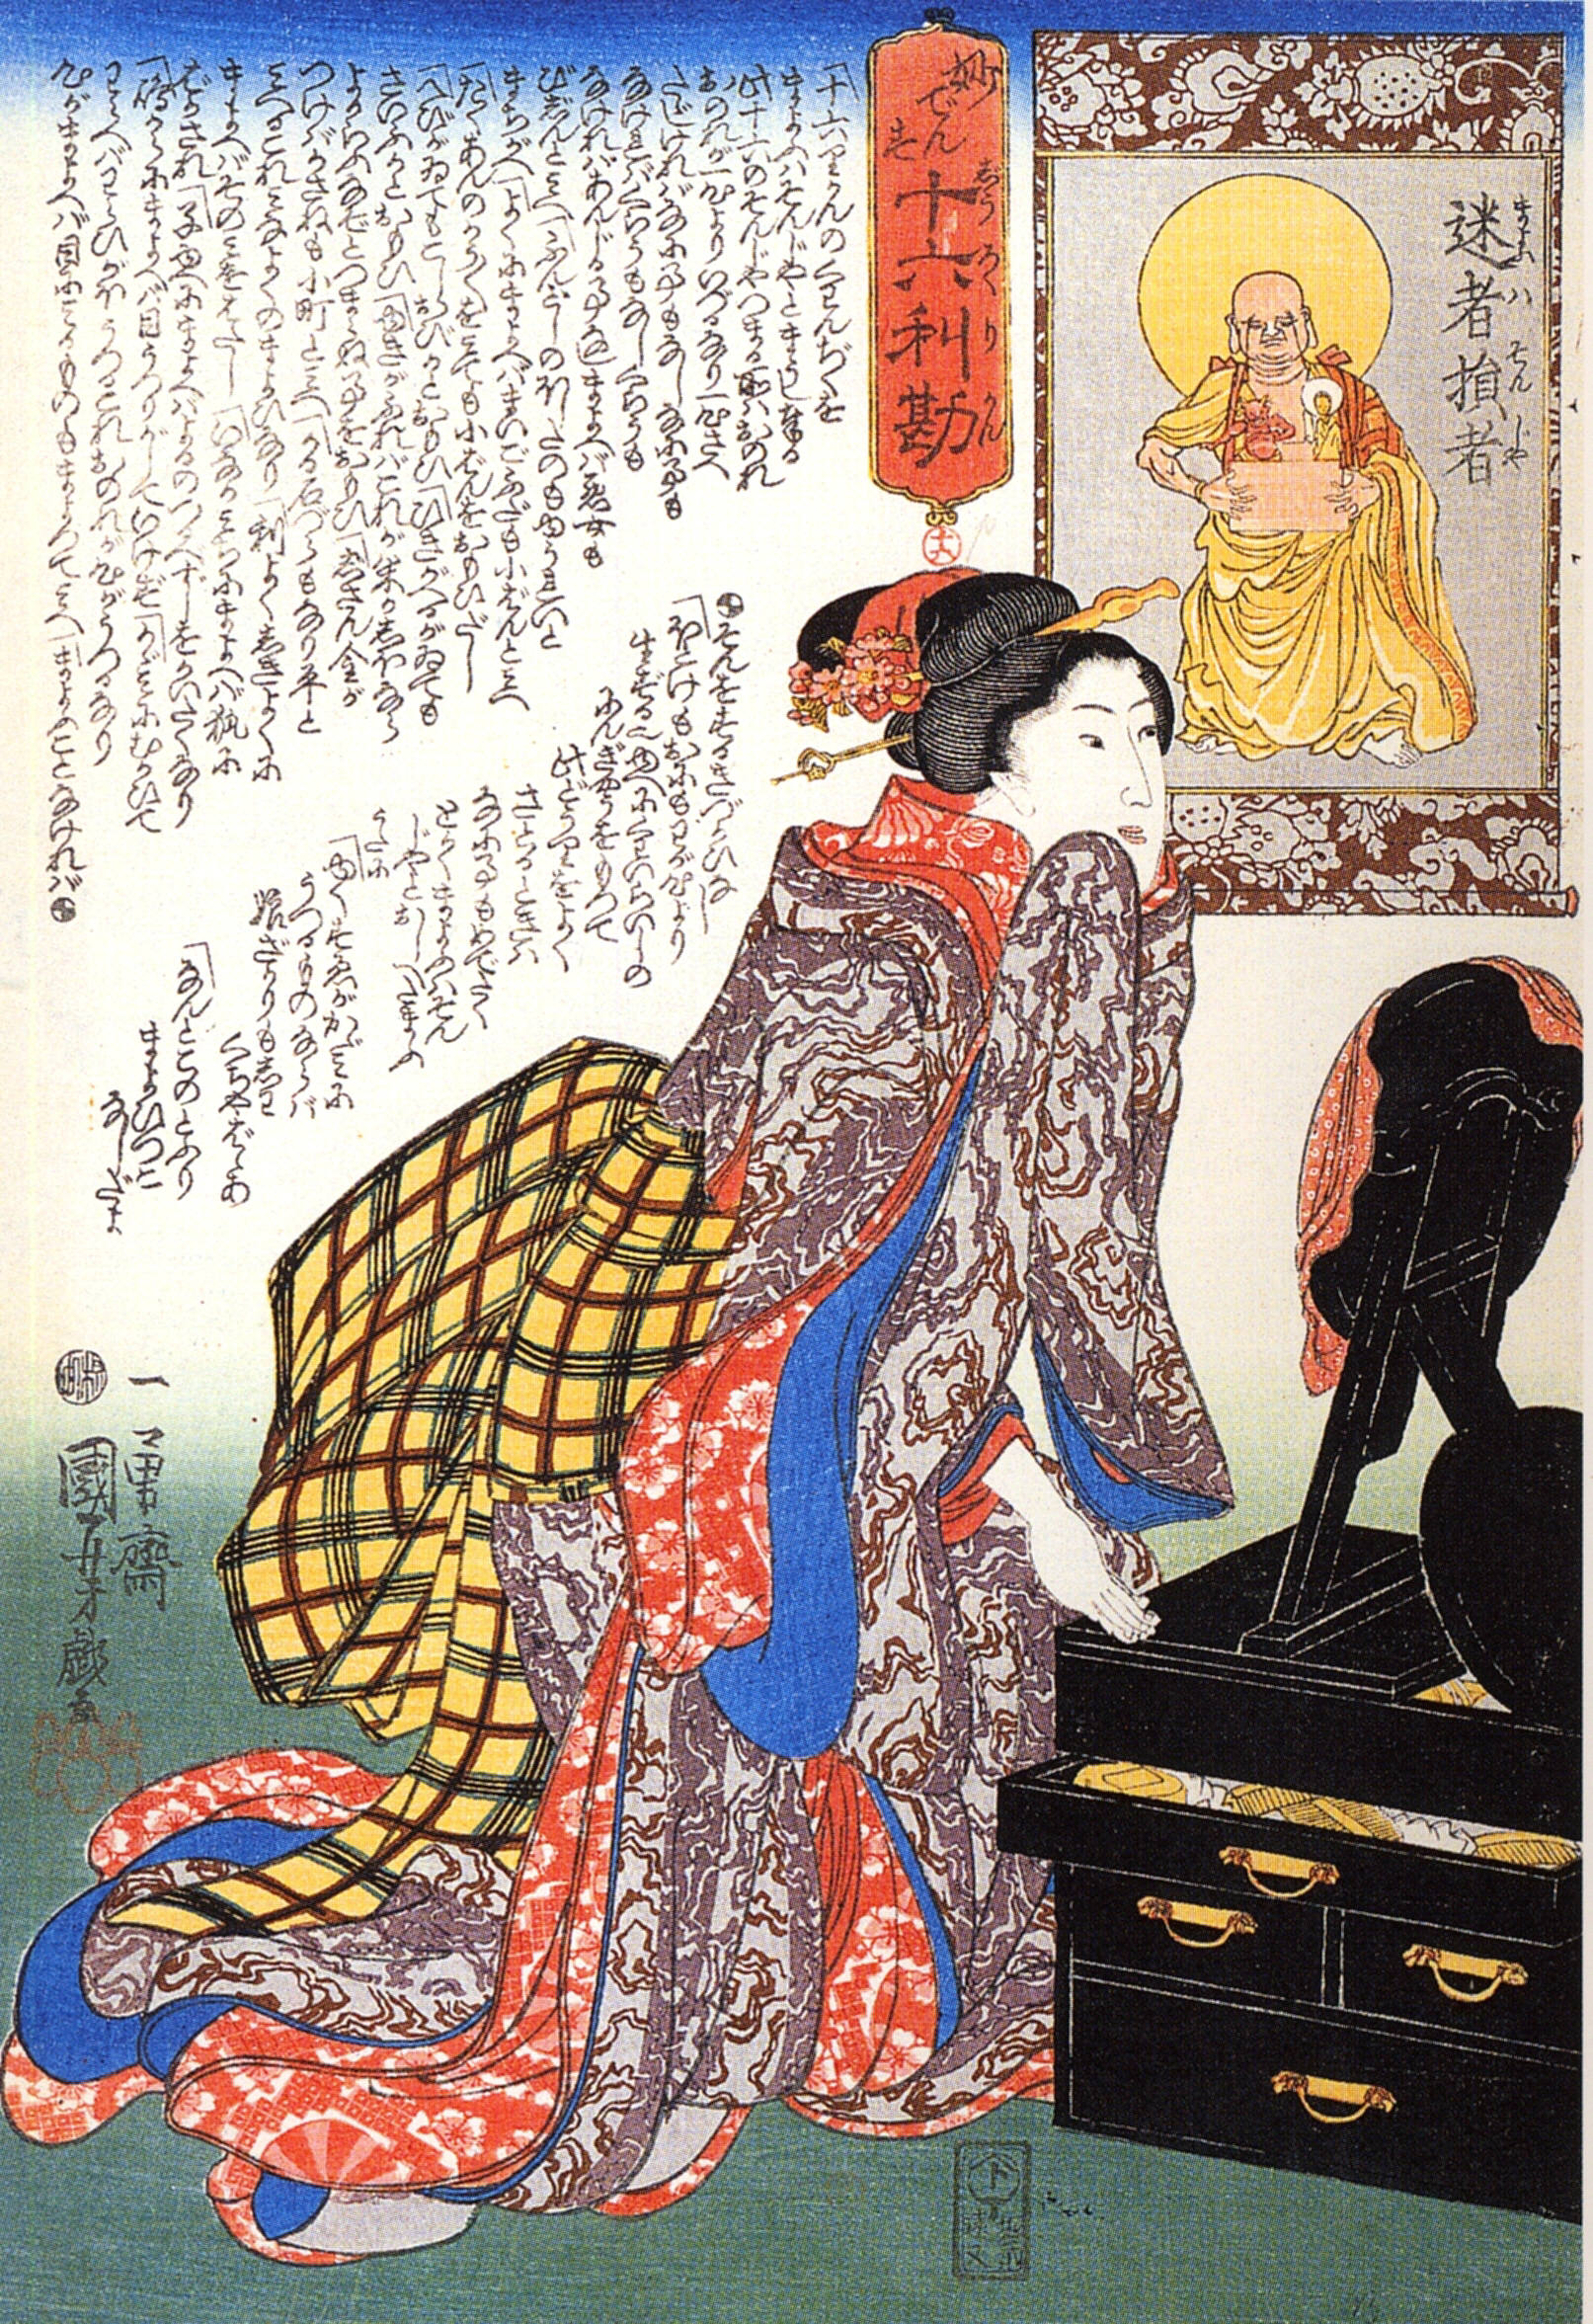 http://upload.wikimedia.org/wikipedia/commons/5/5d/Kuniyoshi_Utagawa%2C_Women_16.jpg